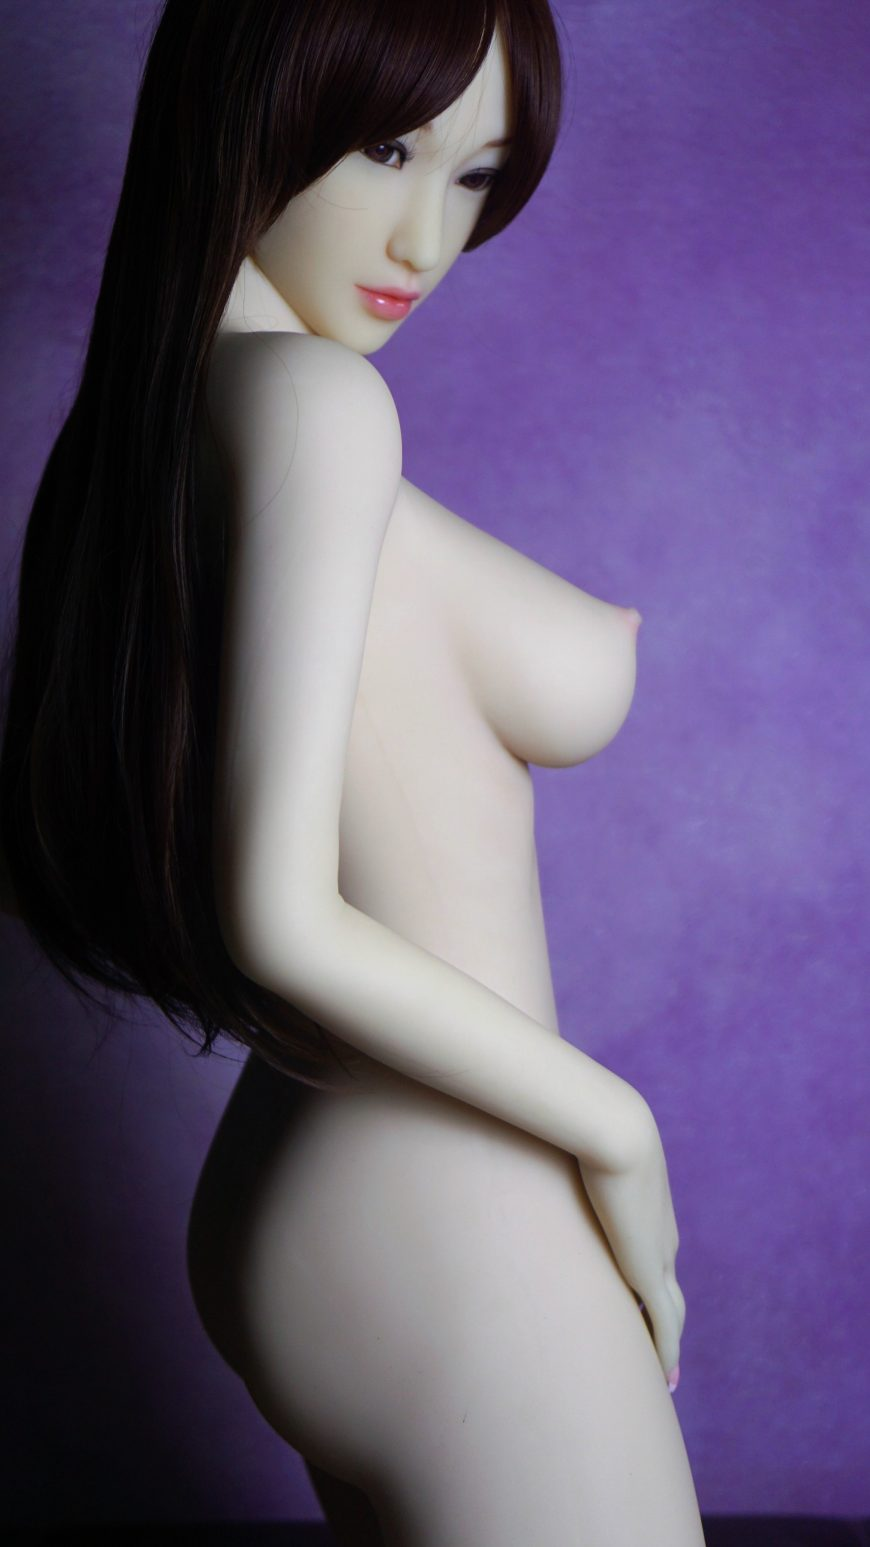 Sex-Doll-Posing-Nude-For-Dirty-Knights-sex-dolls-1 (12)